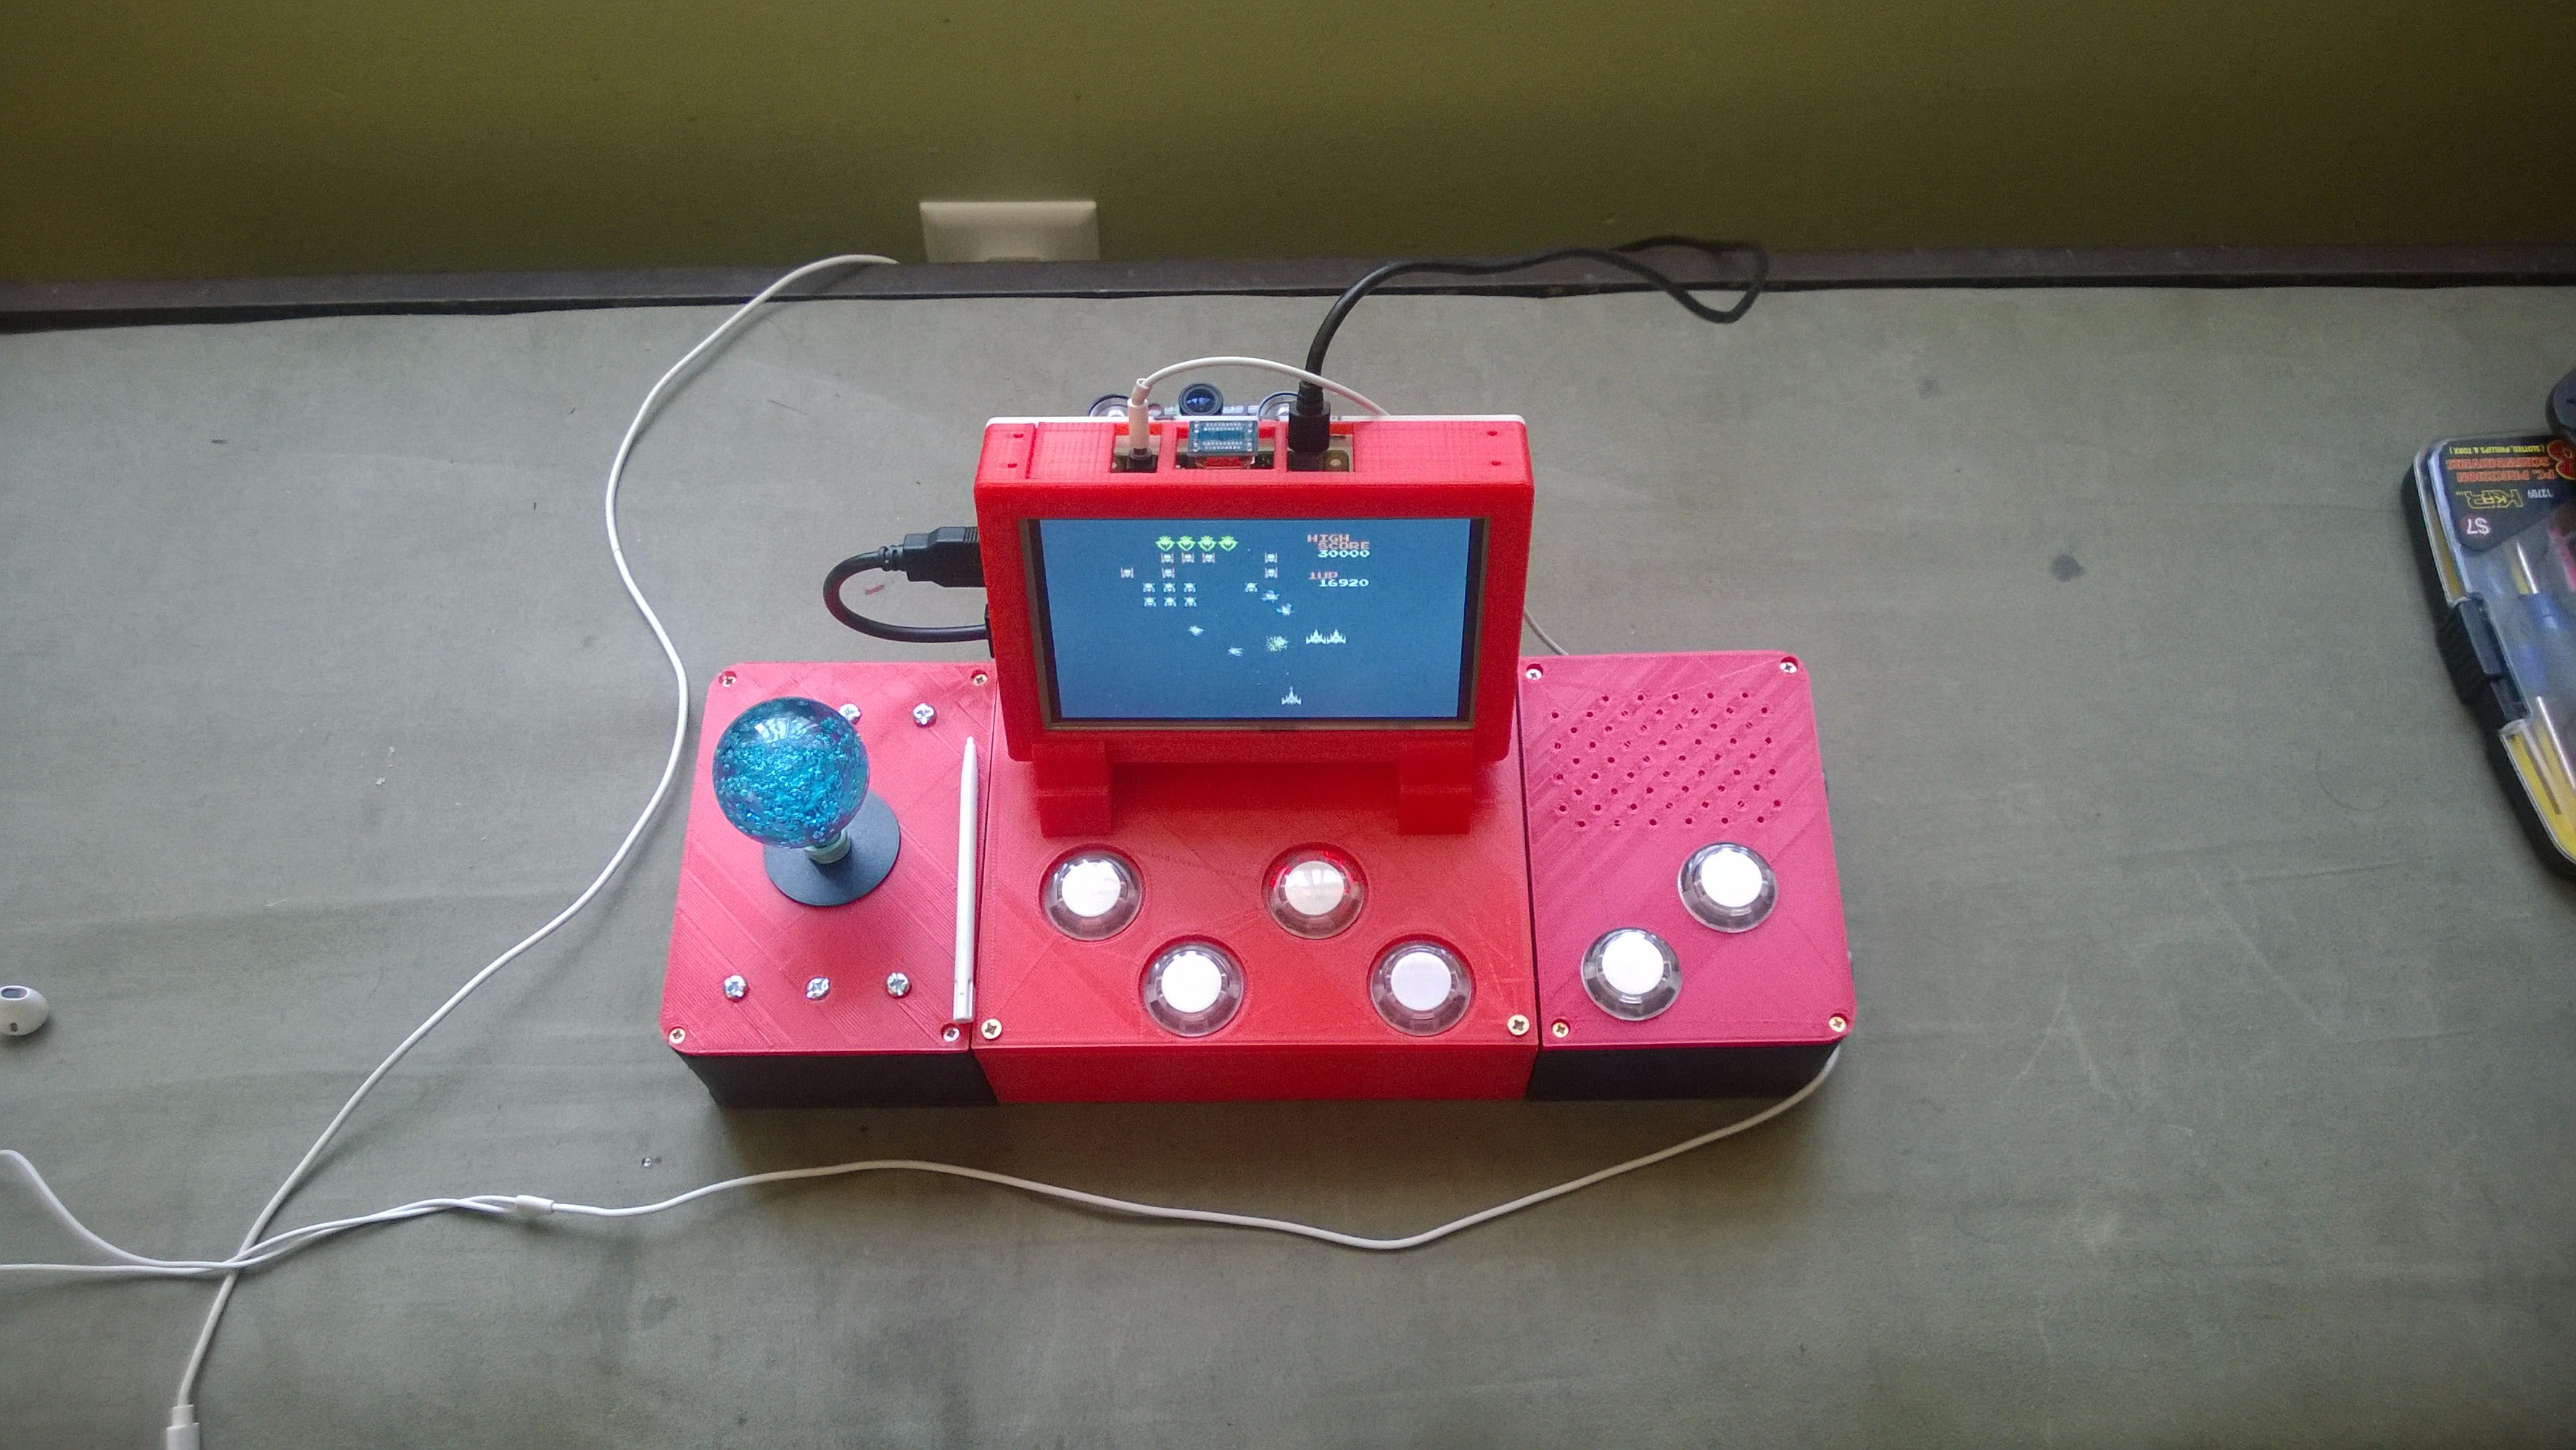 Picture of The Arcade Joystick in Action